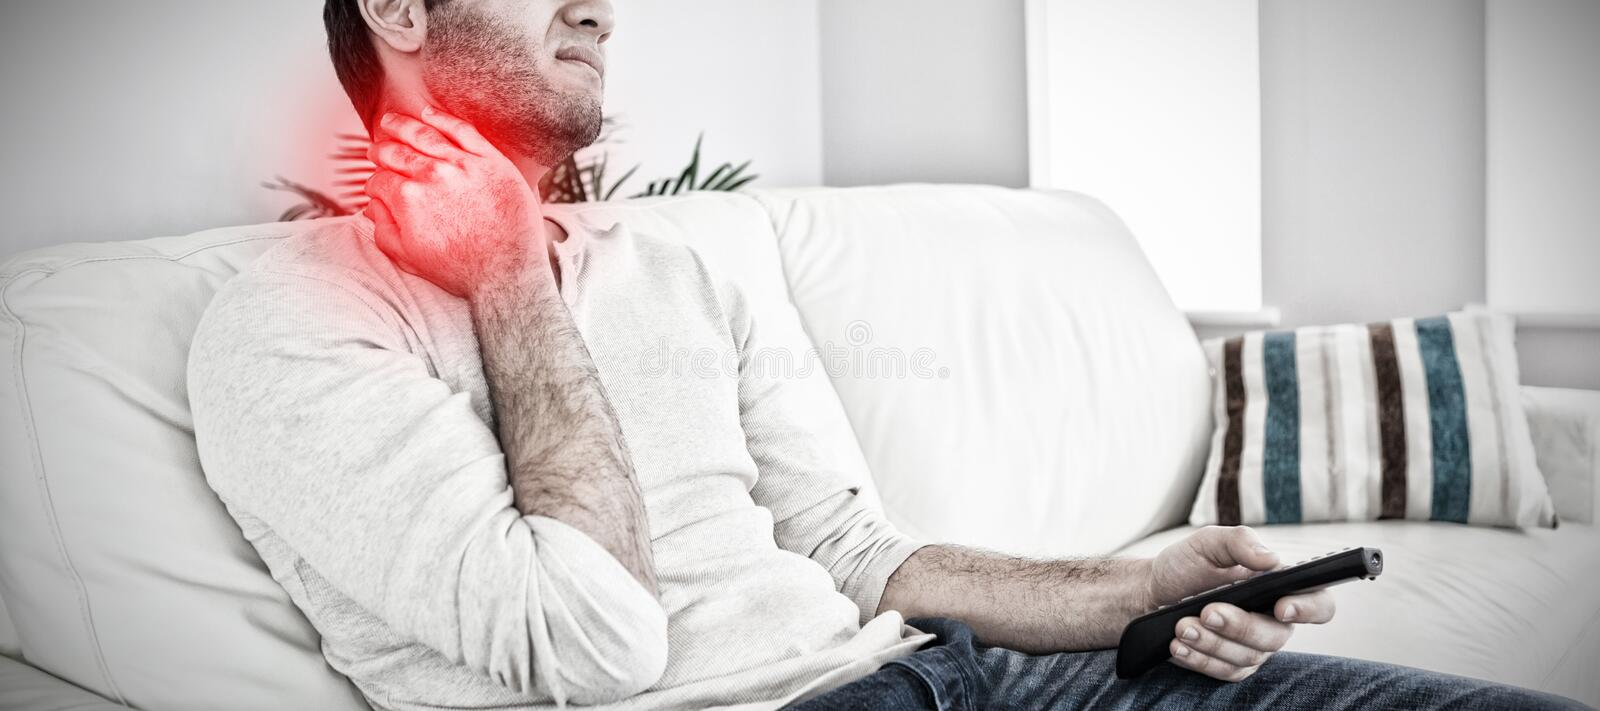 Composite image of handsome man suffering from painful neck. Handsome man suffering from painful neck against highlighted pain stock photography